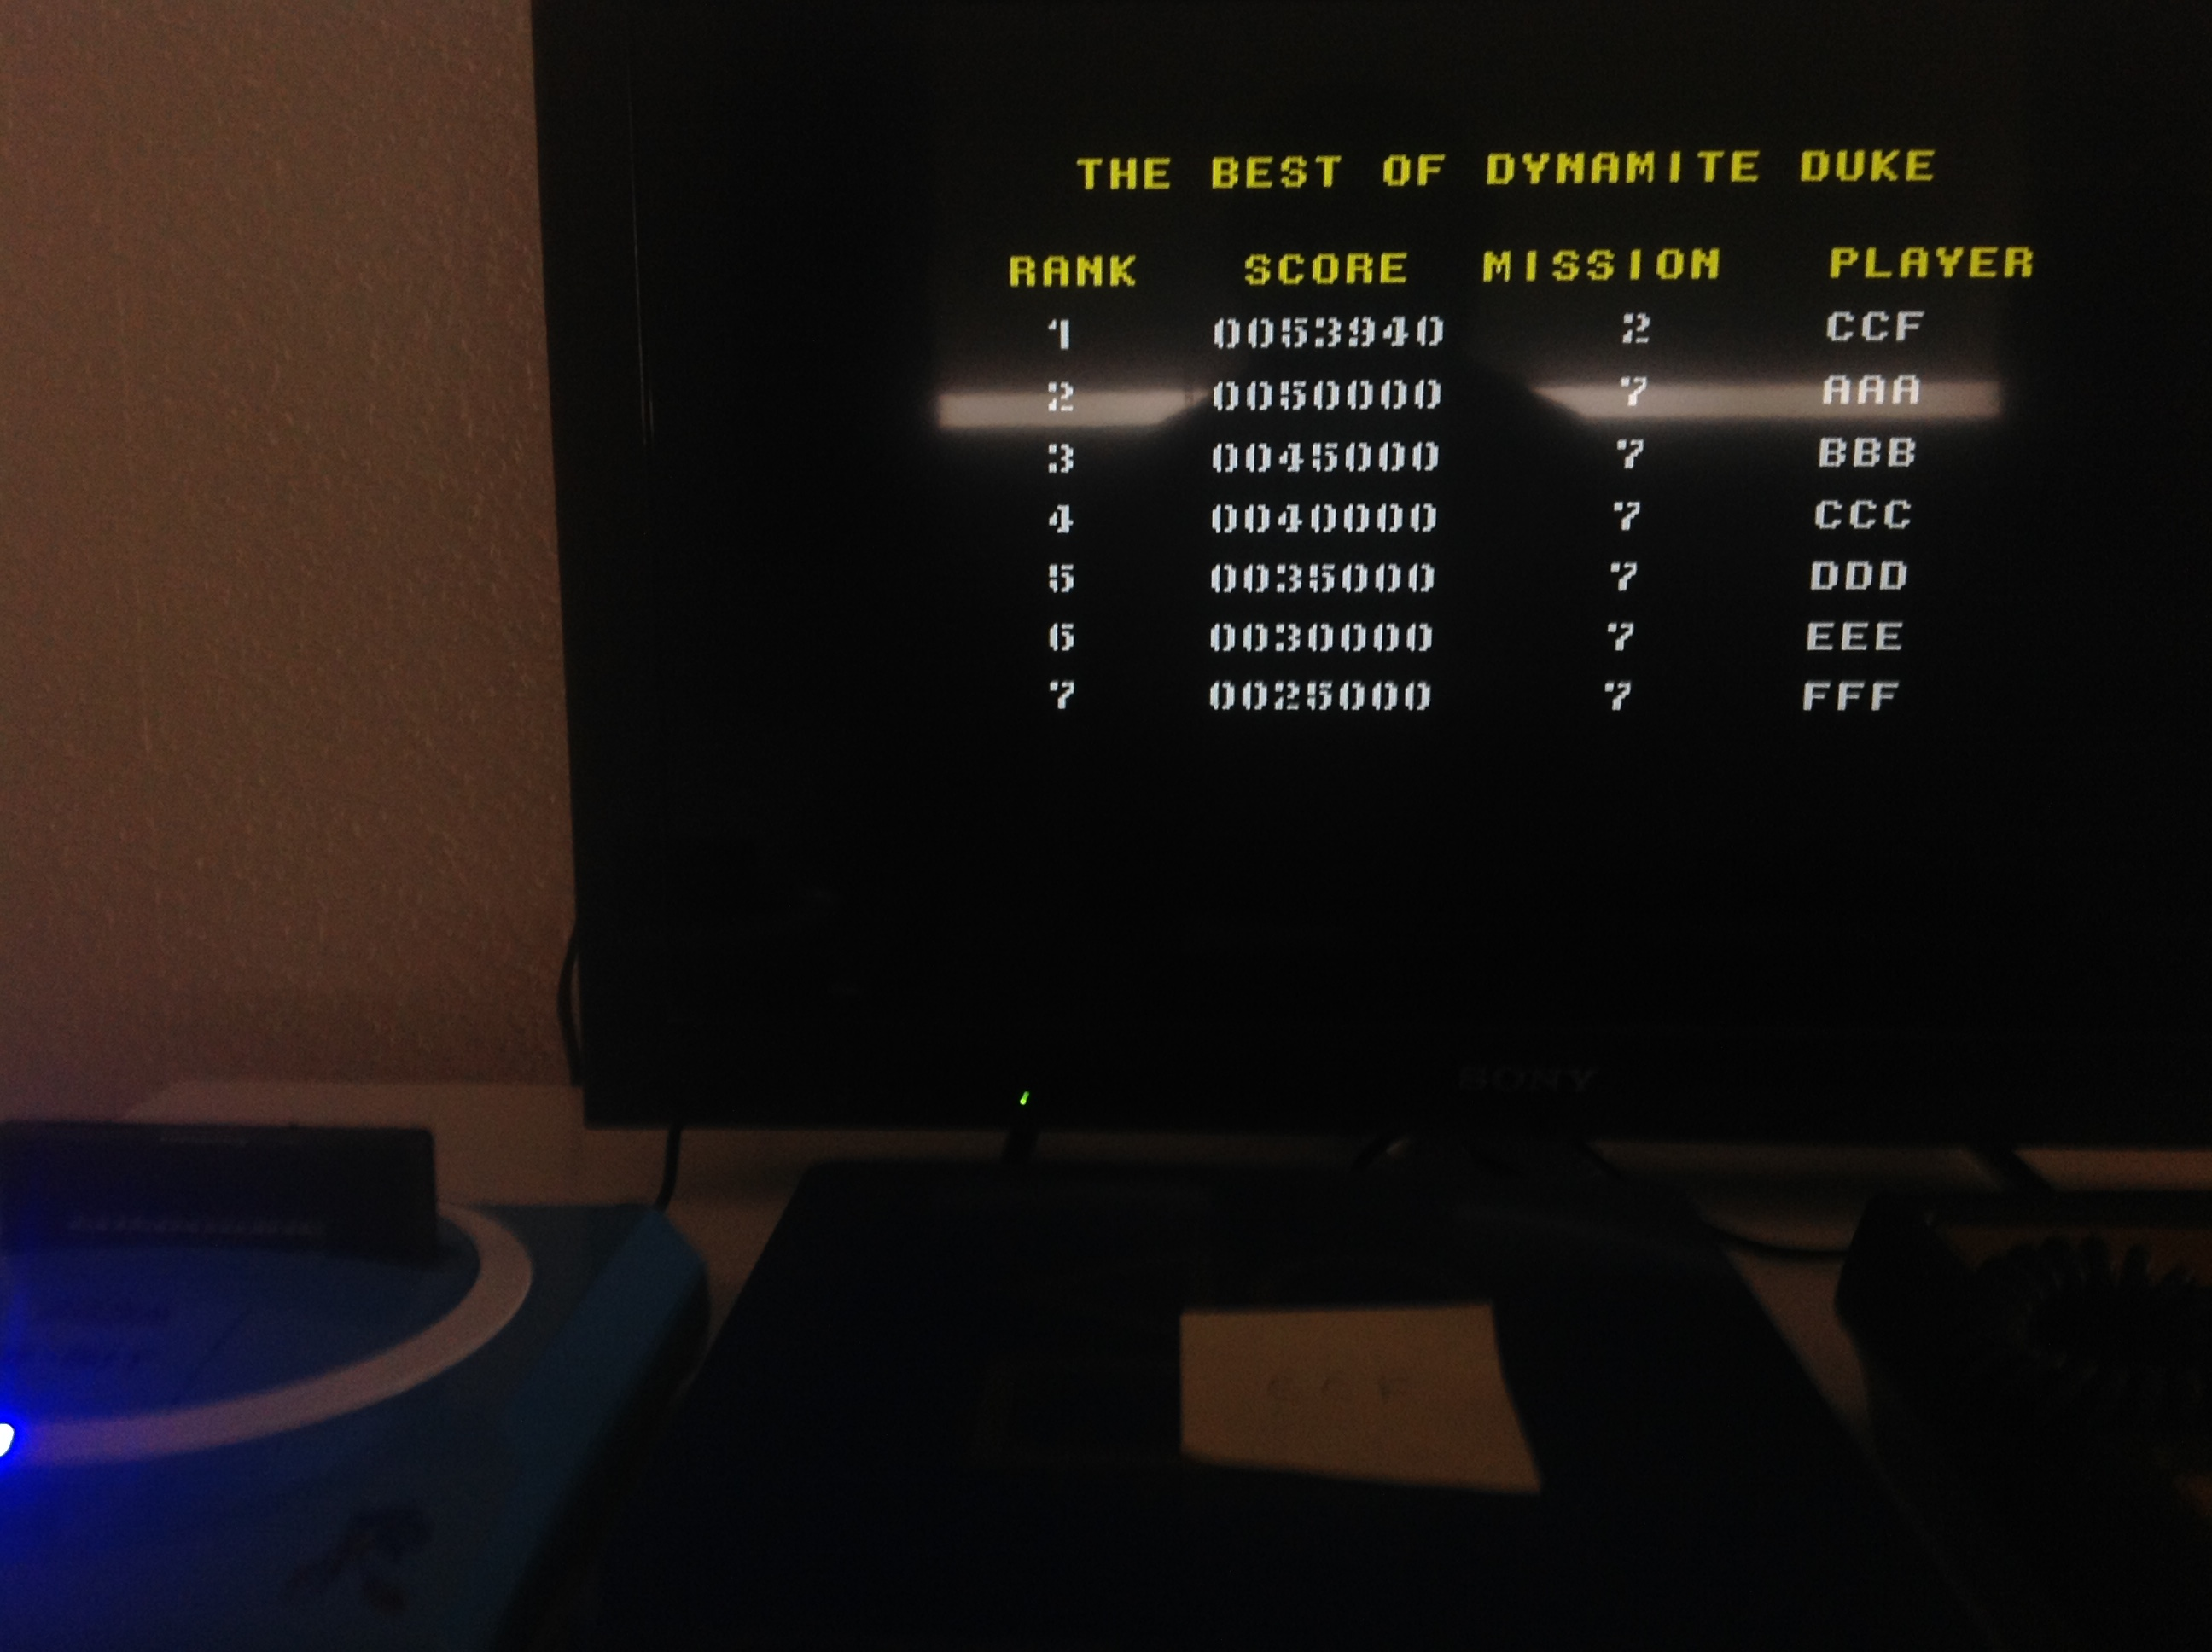 CoCoForest: Dynamite Duke (Sega Genesis / MegaDrive) 53,940 points on 2018-08-07 03:16:38